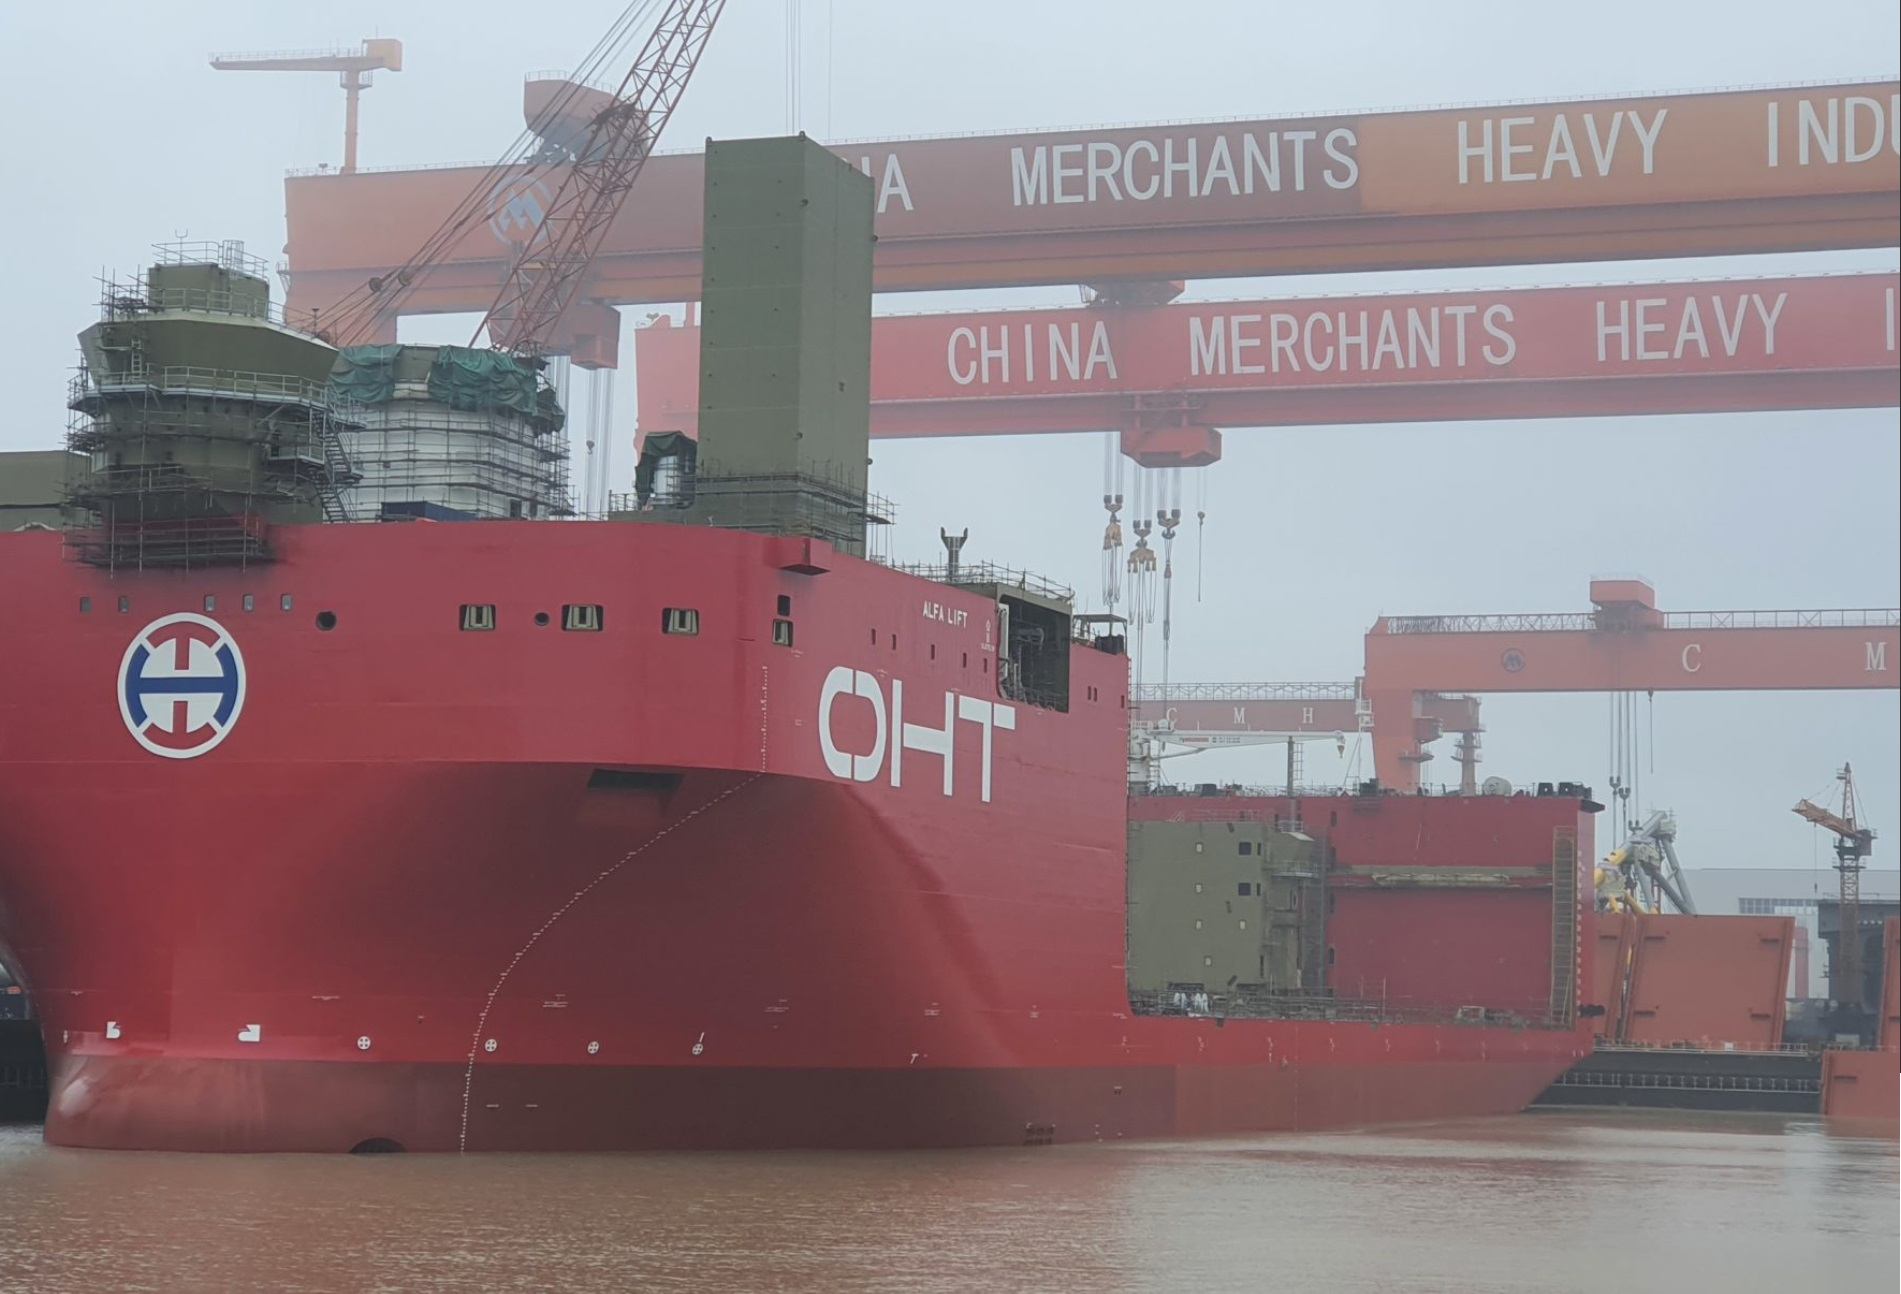 OHT's Alfa Lift launched and prepared for crane installation